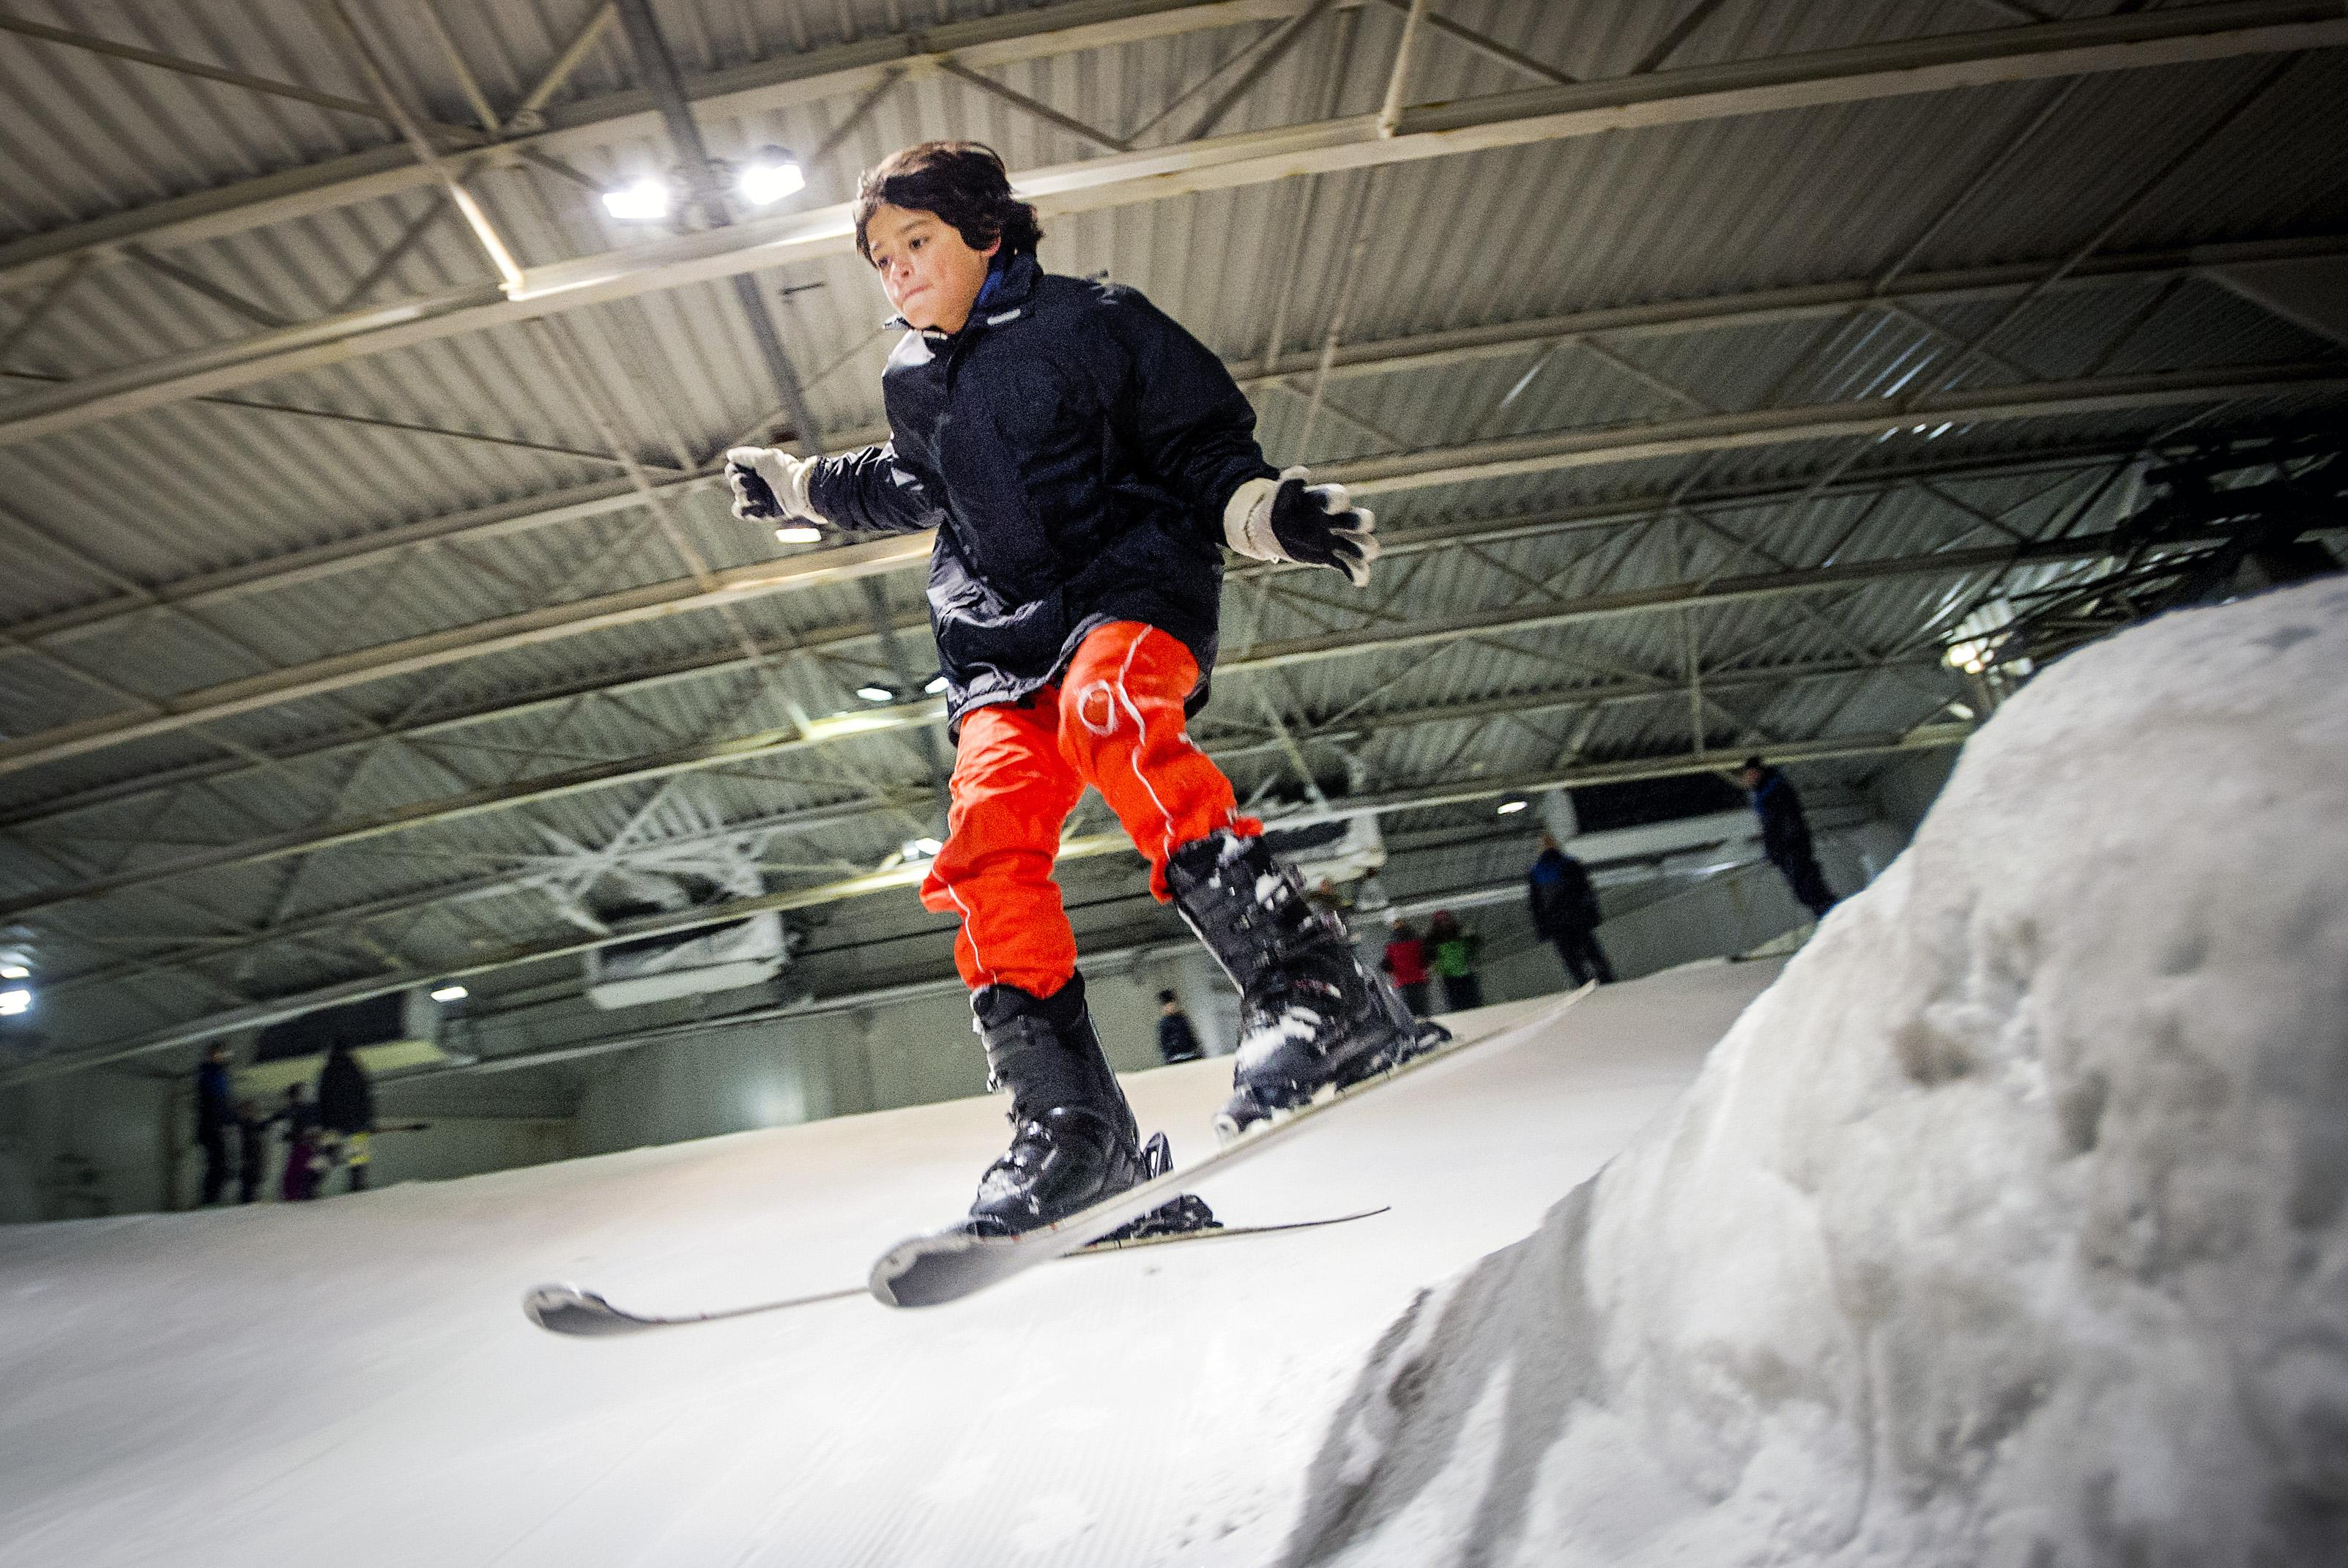 SnowWorld praat met banken over vrijstellingen door crisis